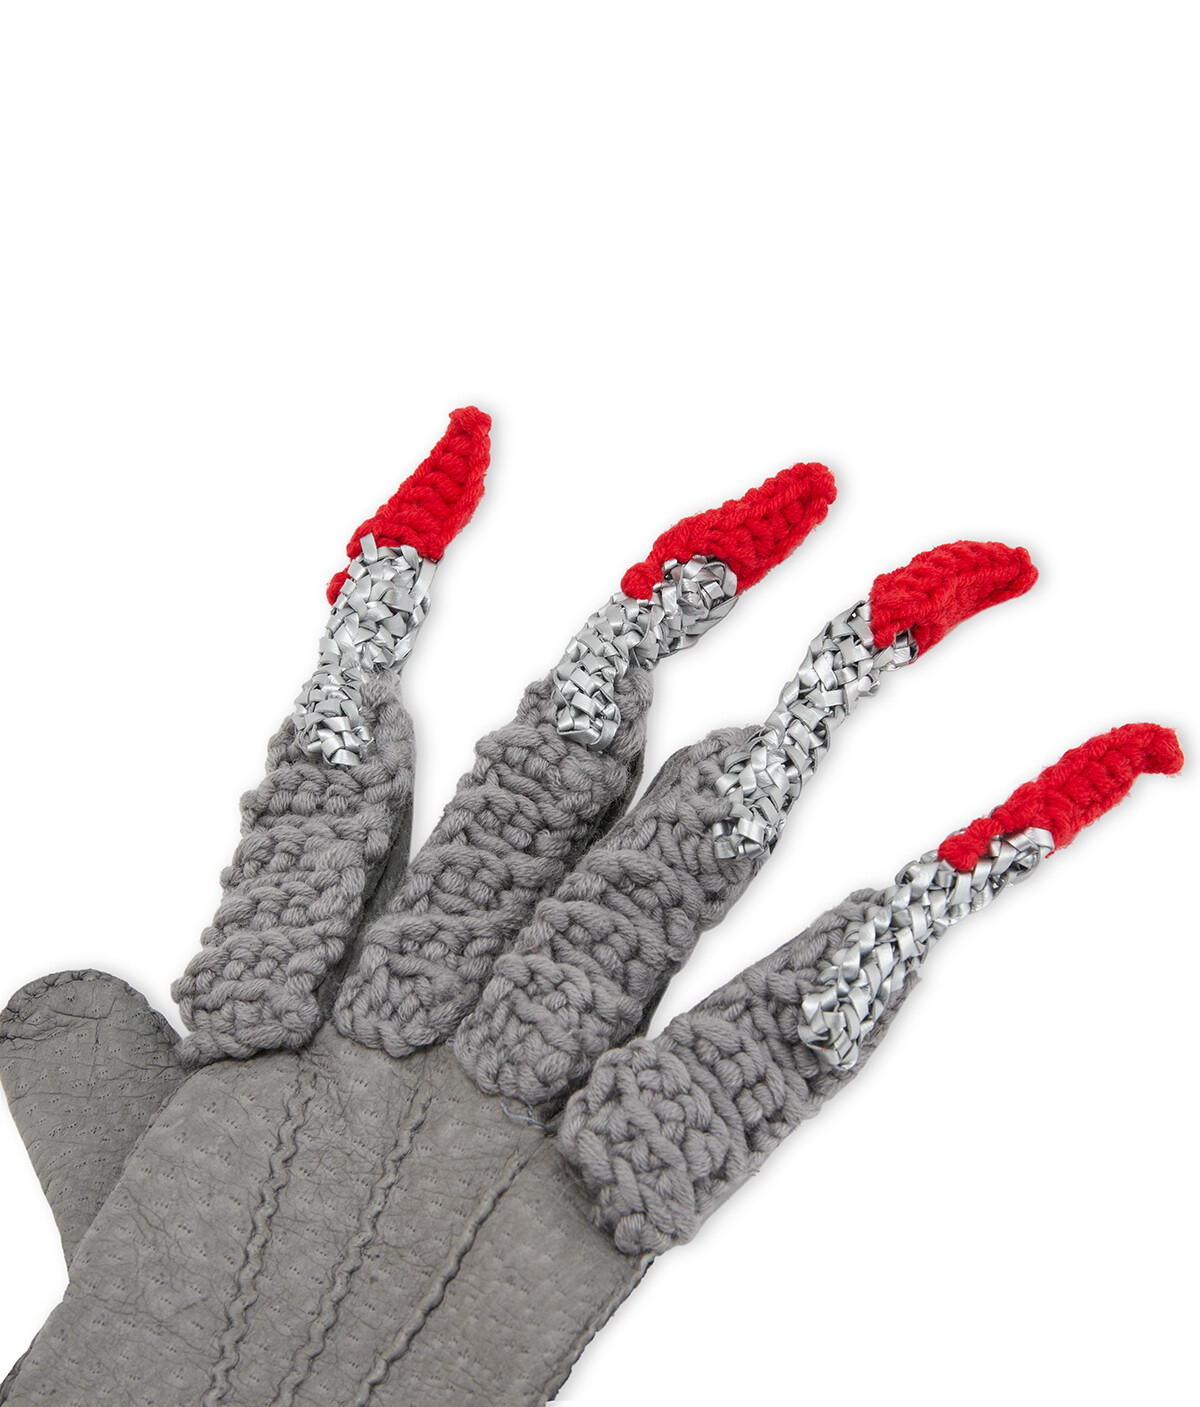 LOEWE Claw Knit Gloves Gris/Rojo front